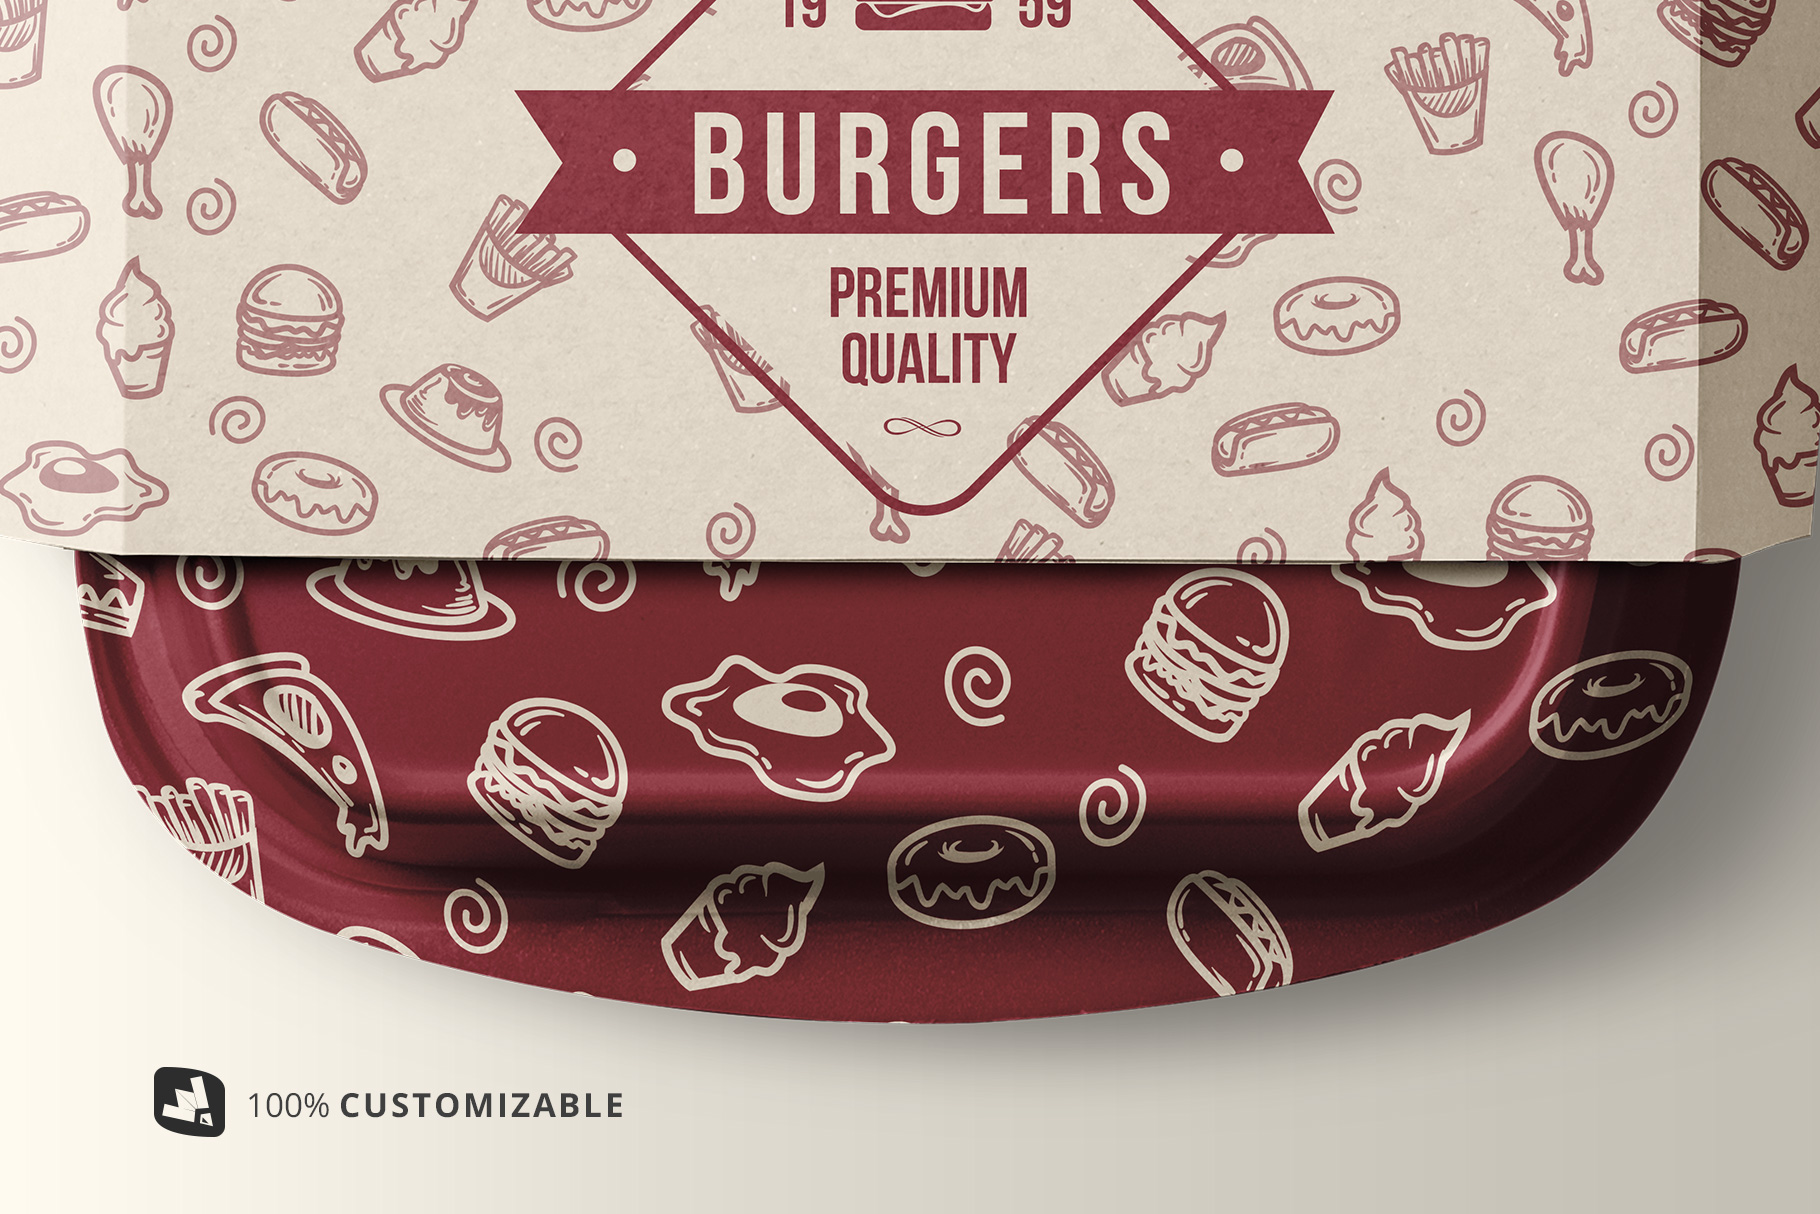 zoomed in image of the fast food container packaging mockup